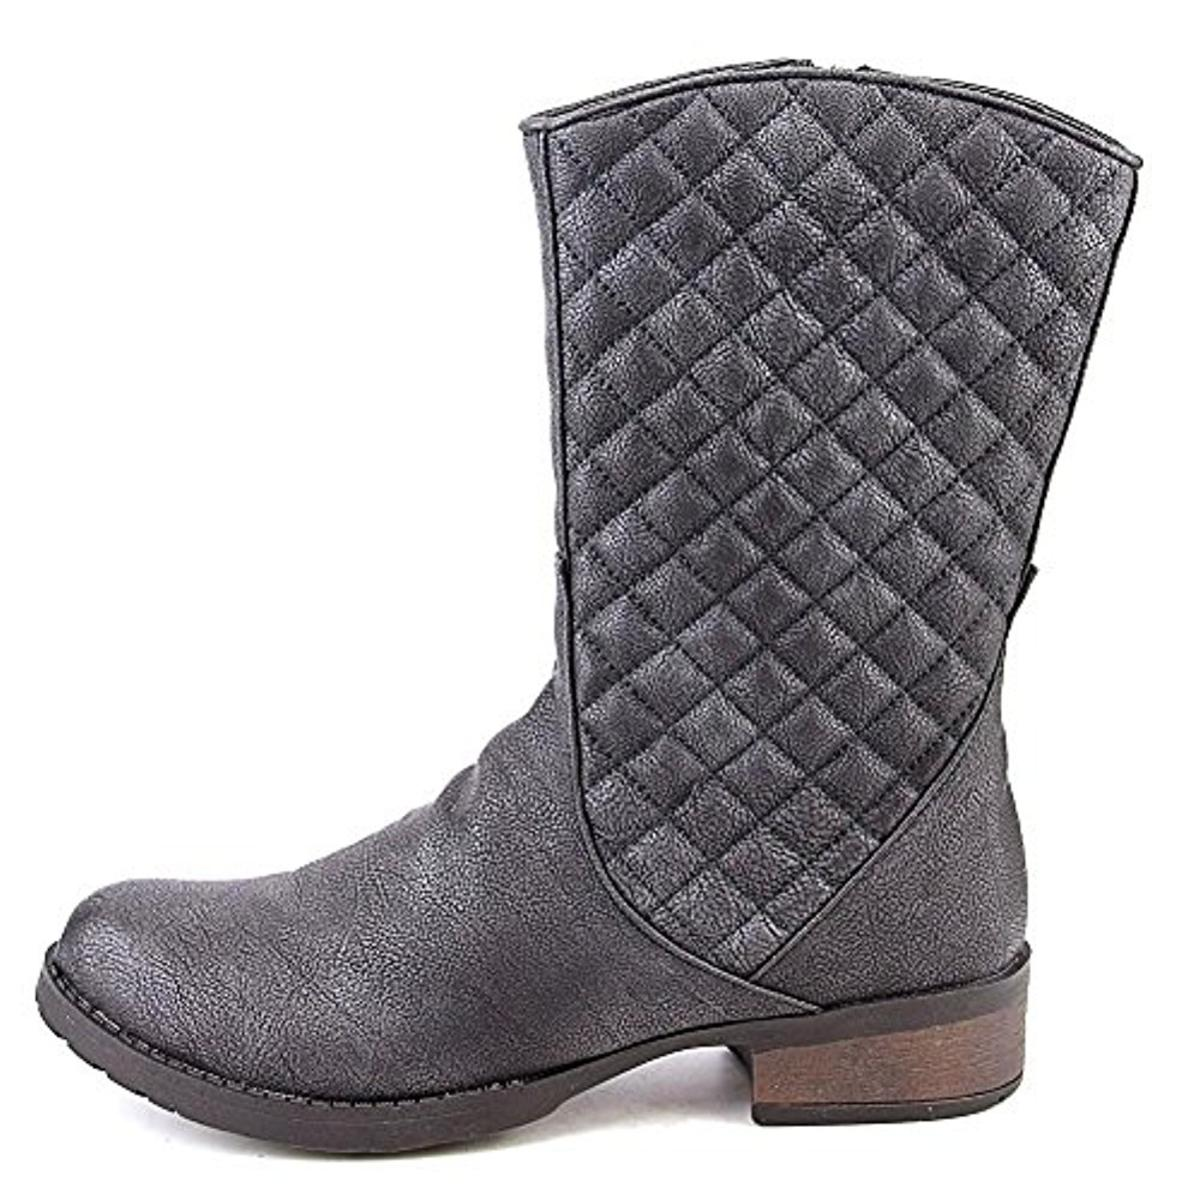 Luichiny Womens March N On Faux Leather Quilted Riding Boots by Luichiny